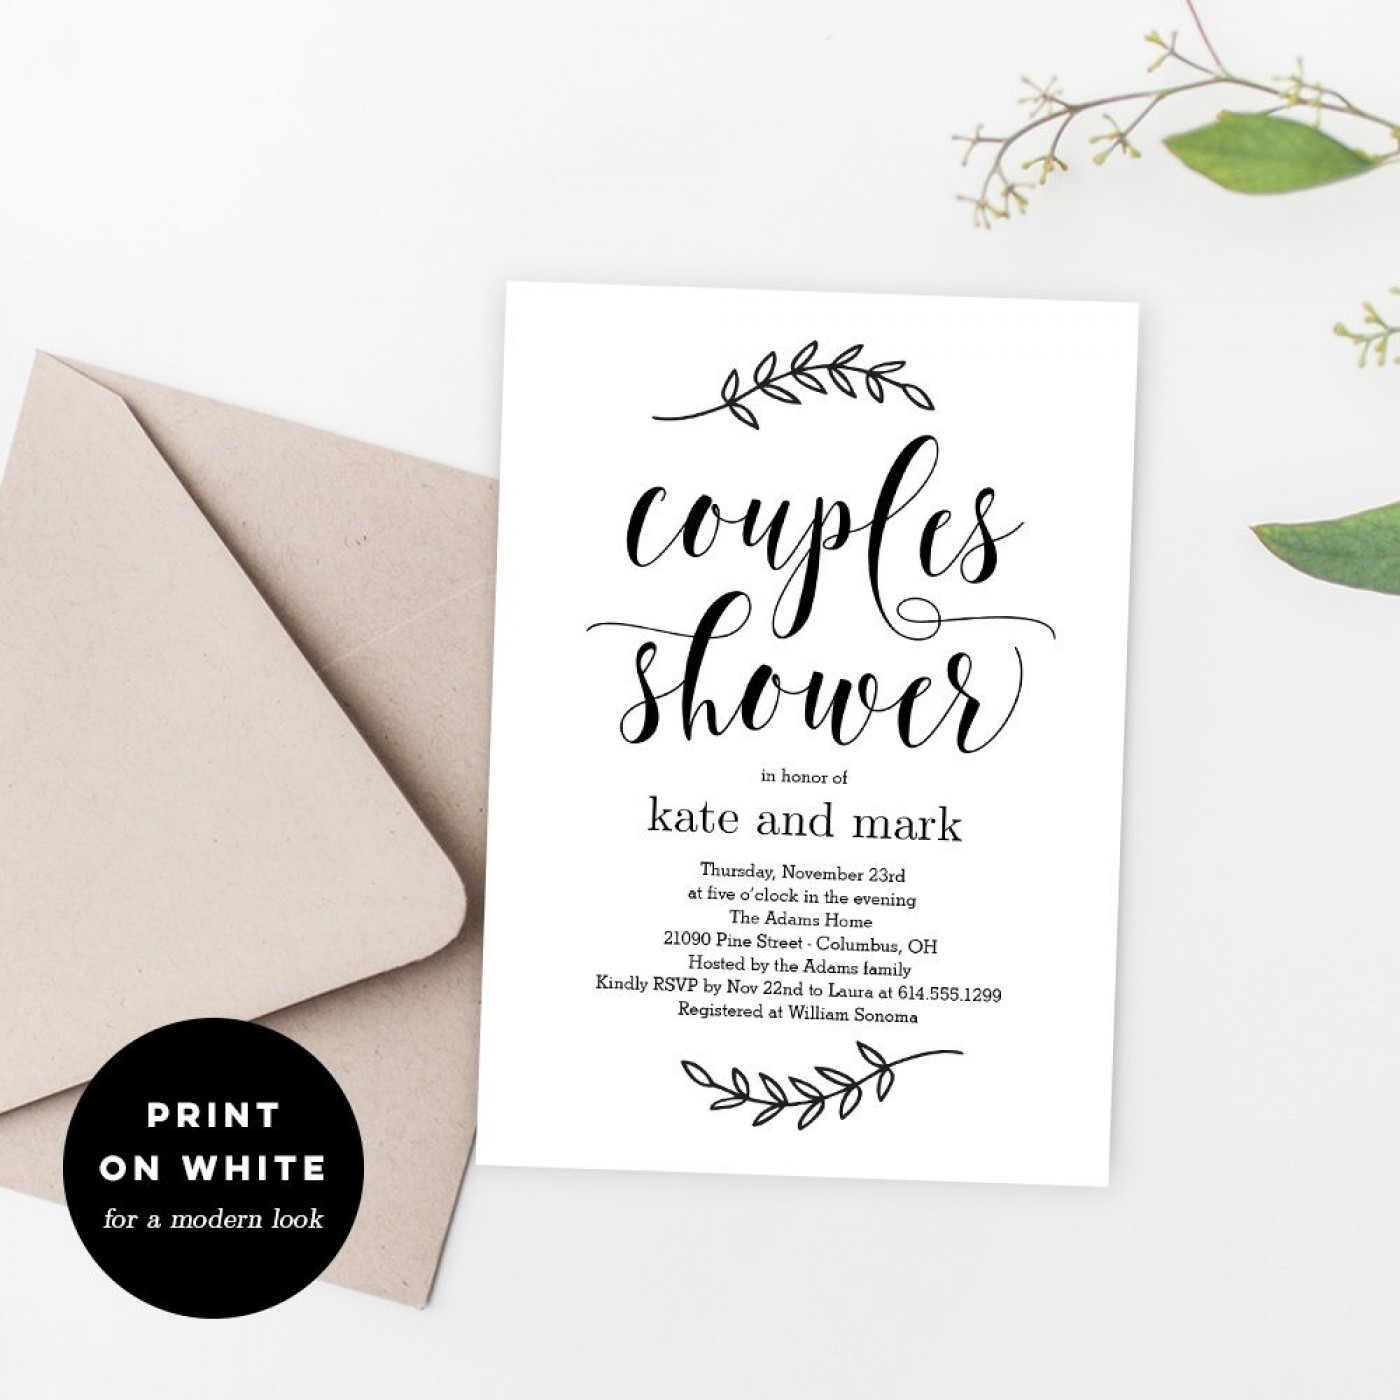 010 Sensational Free Couple Shower Invitation Template Download Sample 1400